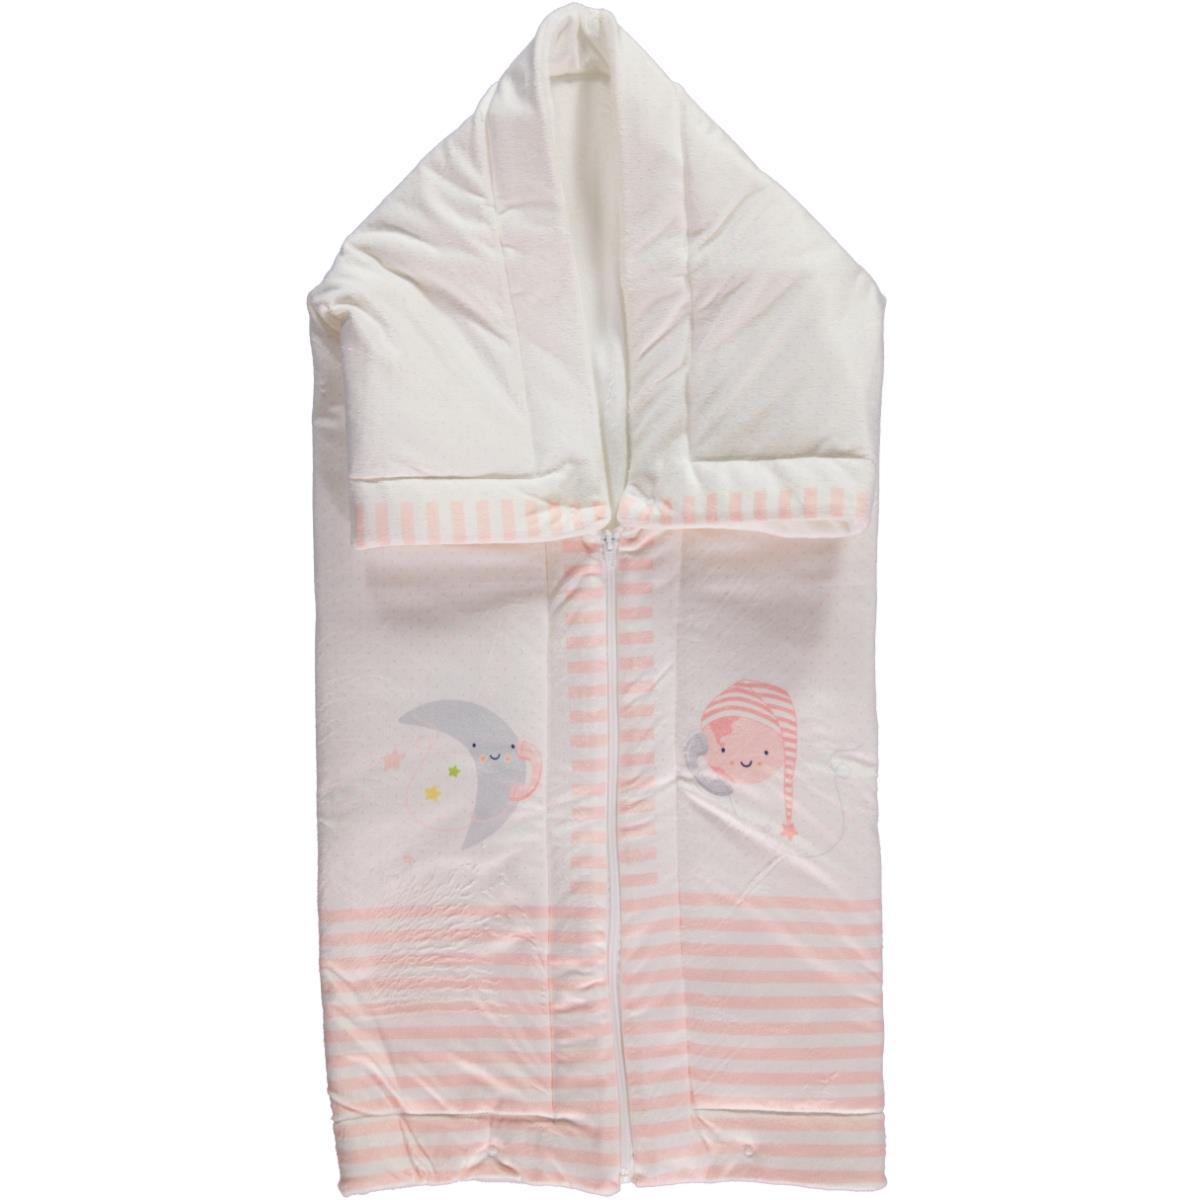 Baby Center Dreams Baby Blanket Pink